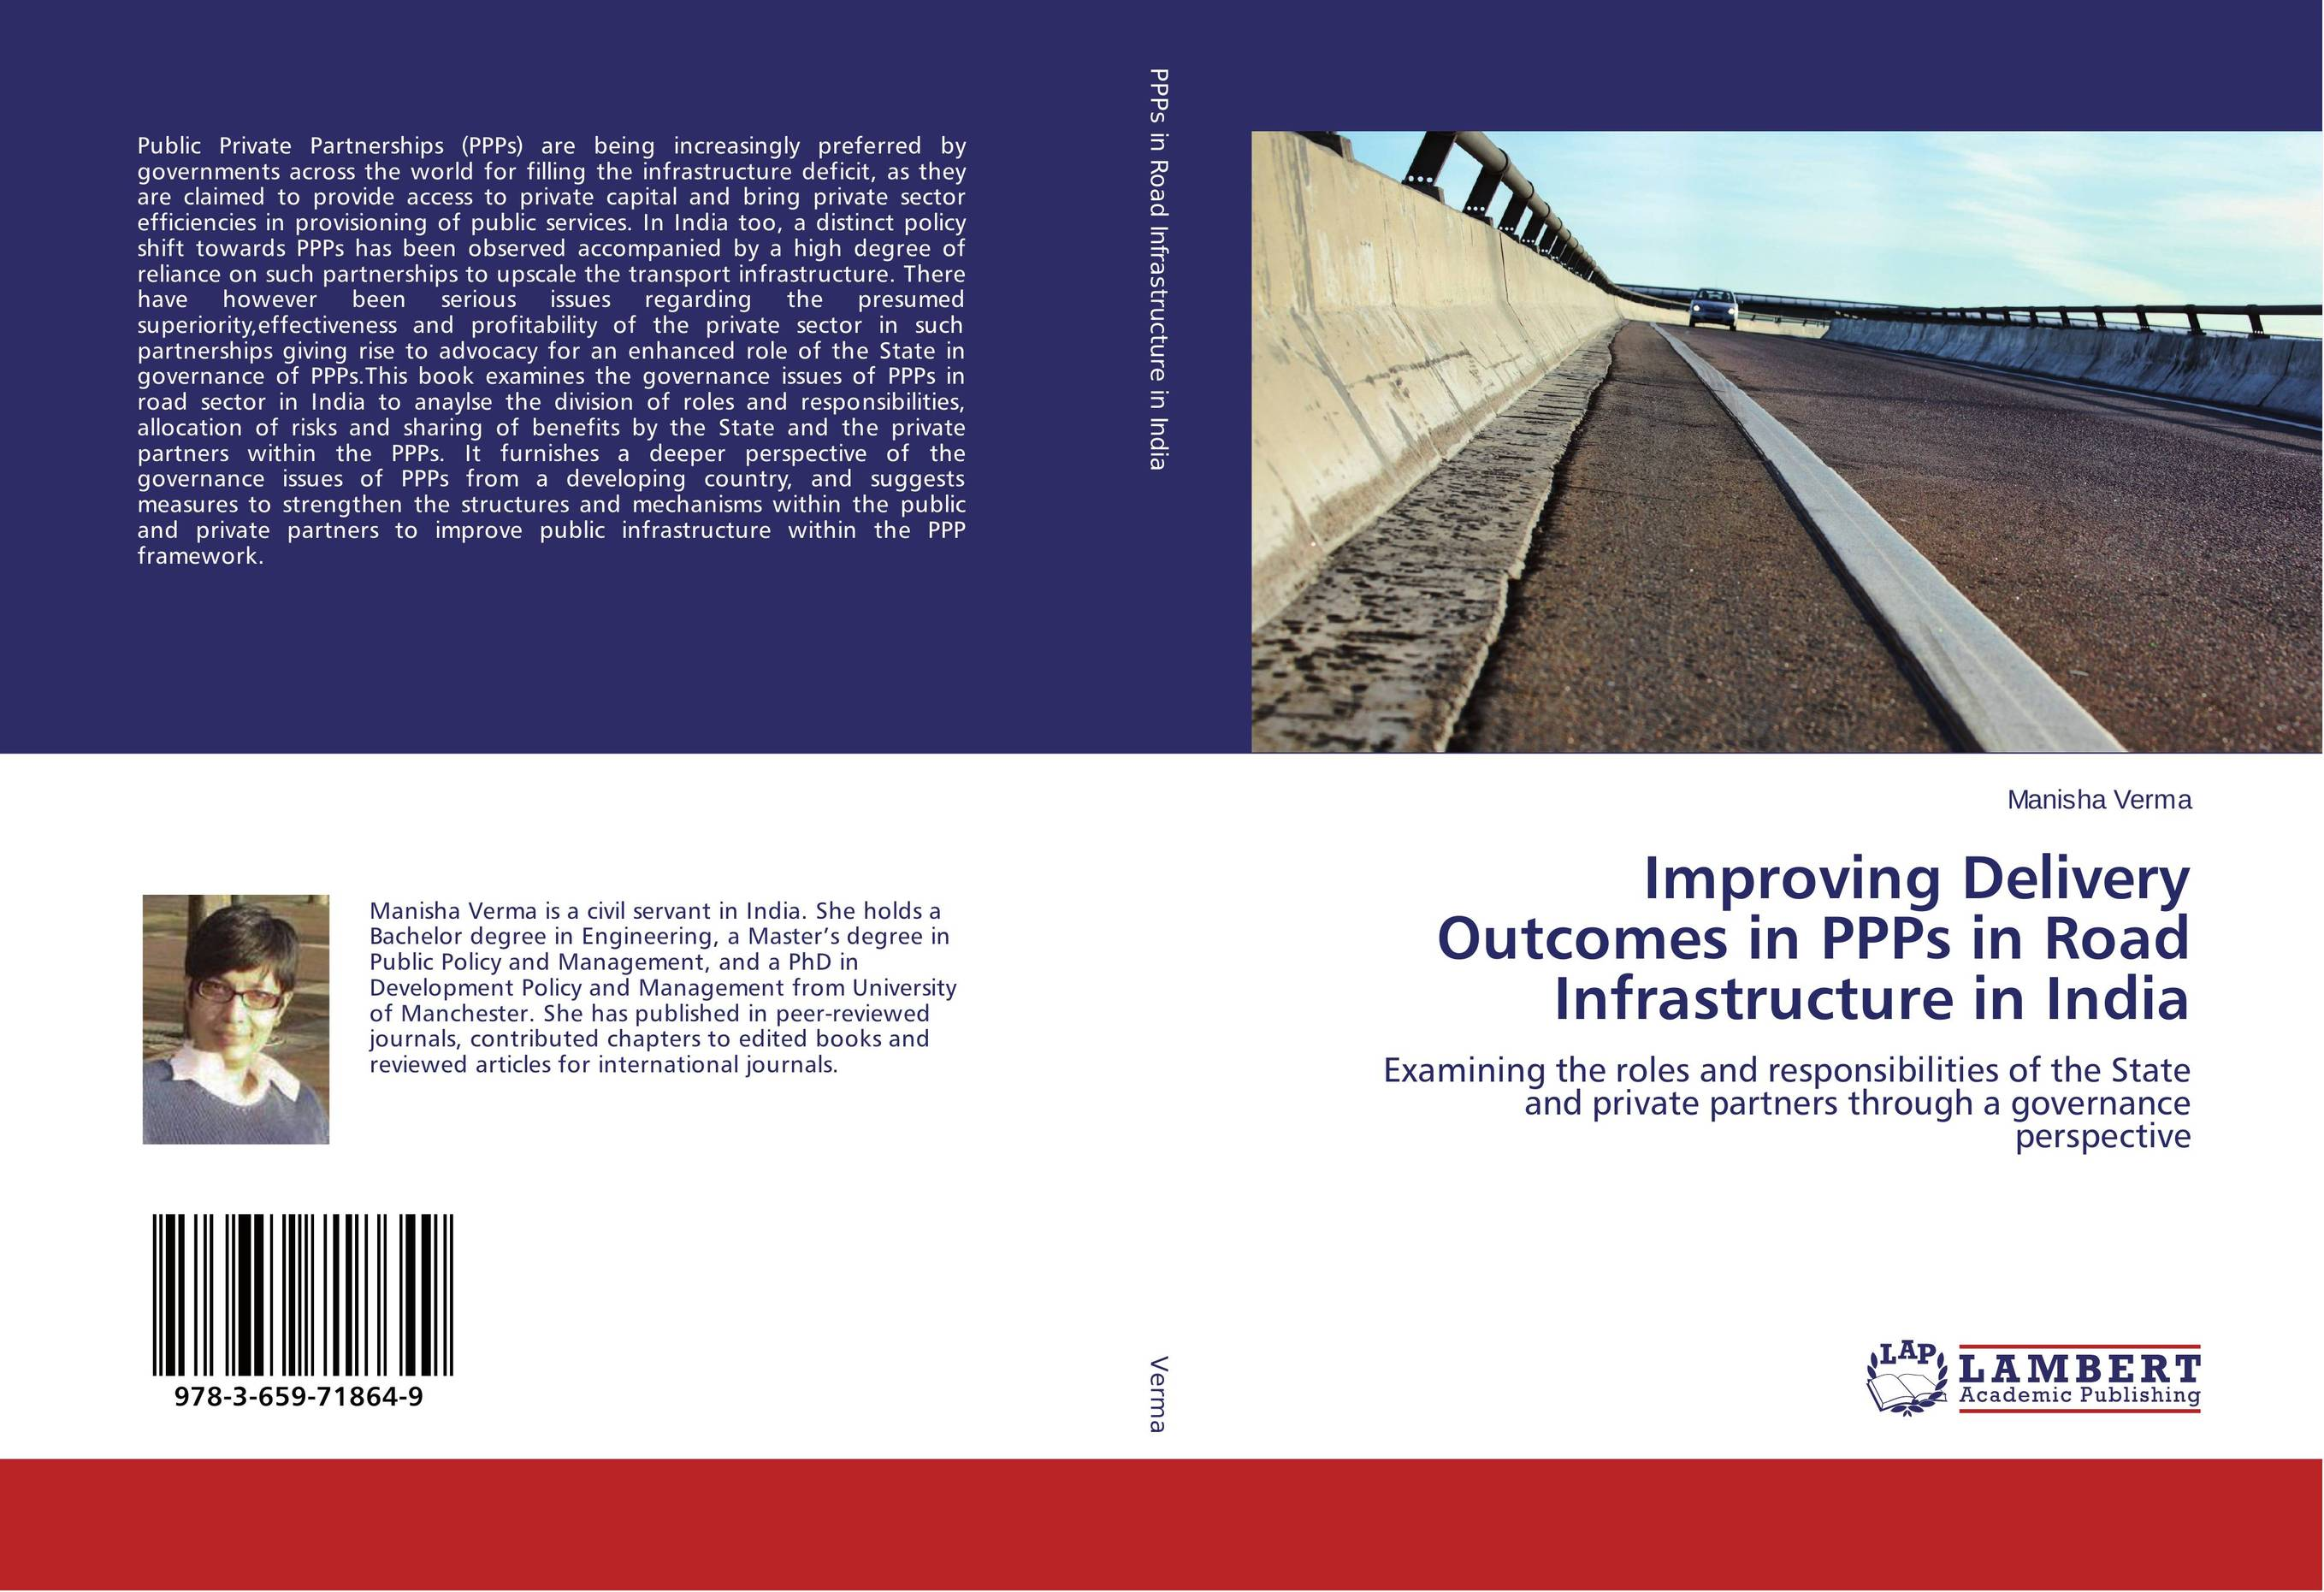 Improving Delivery Outcomes in PPPs in Road Infrastructure in India panchayats in justice delivery in india